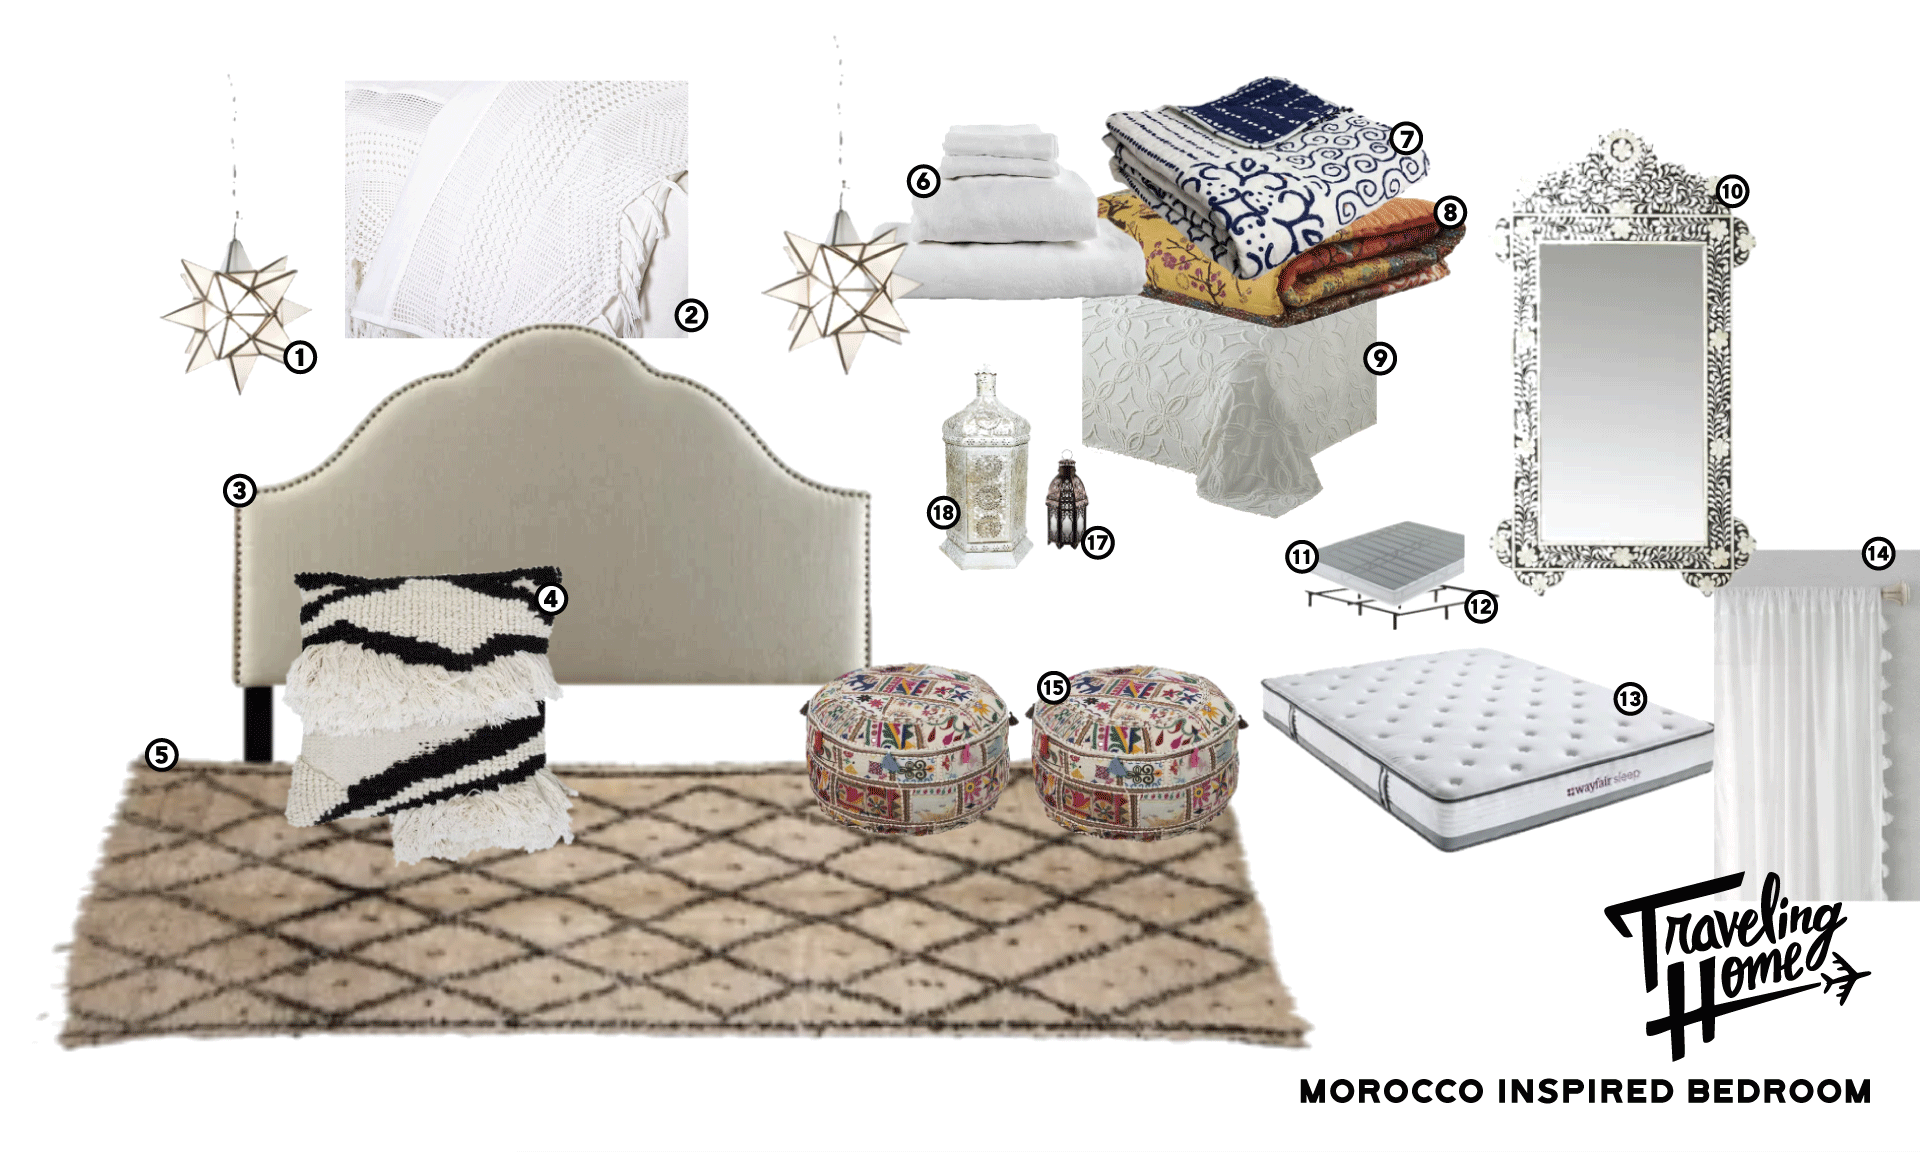 Shop Traveling Home Episode 2: Morocco Inspired Bedroom